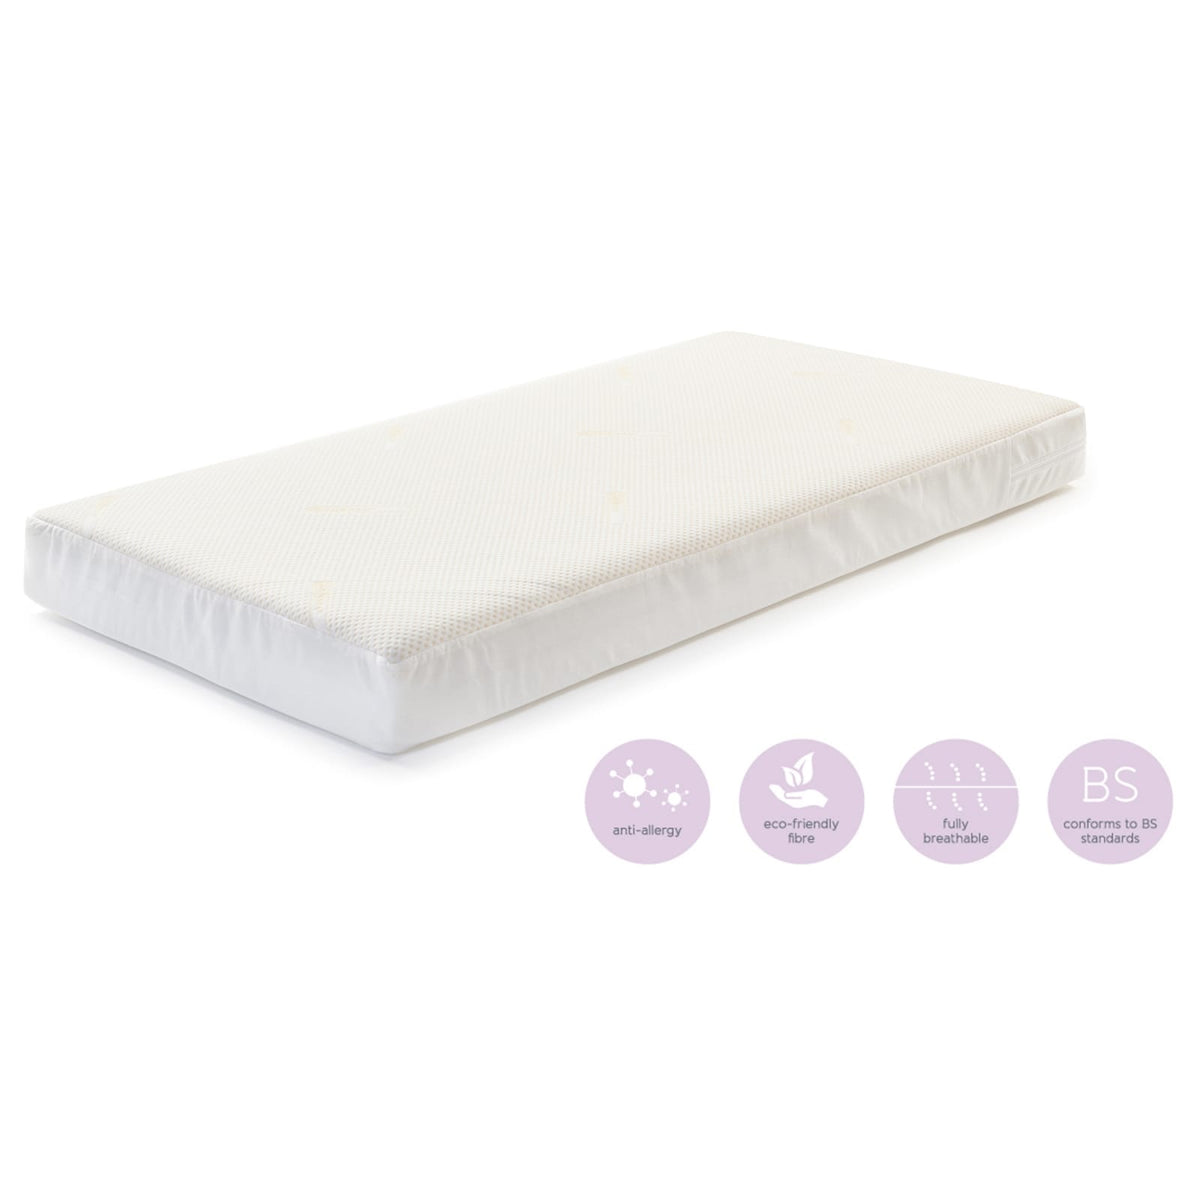 Coolmax Fibre Cot Mattress 60 x 120 cm - Happy Baby